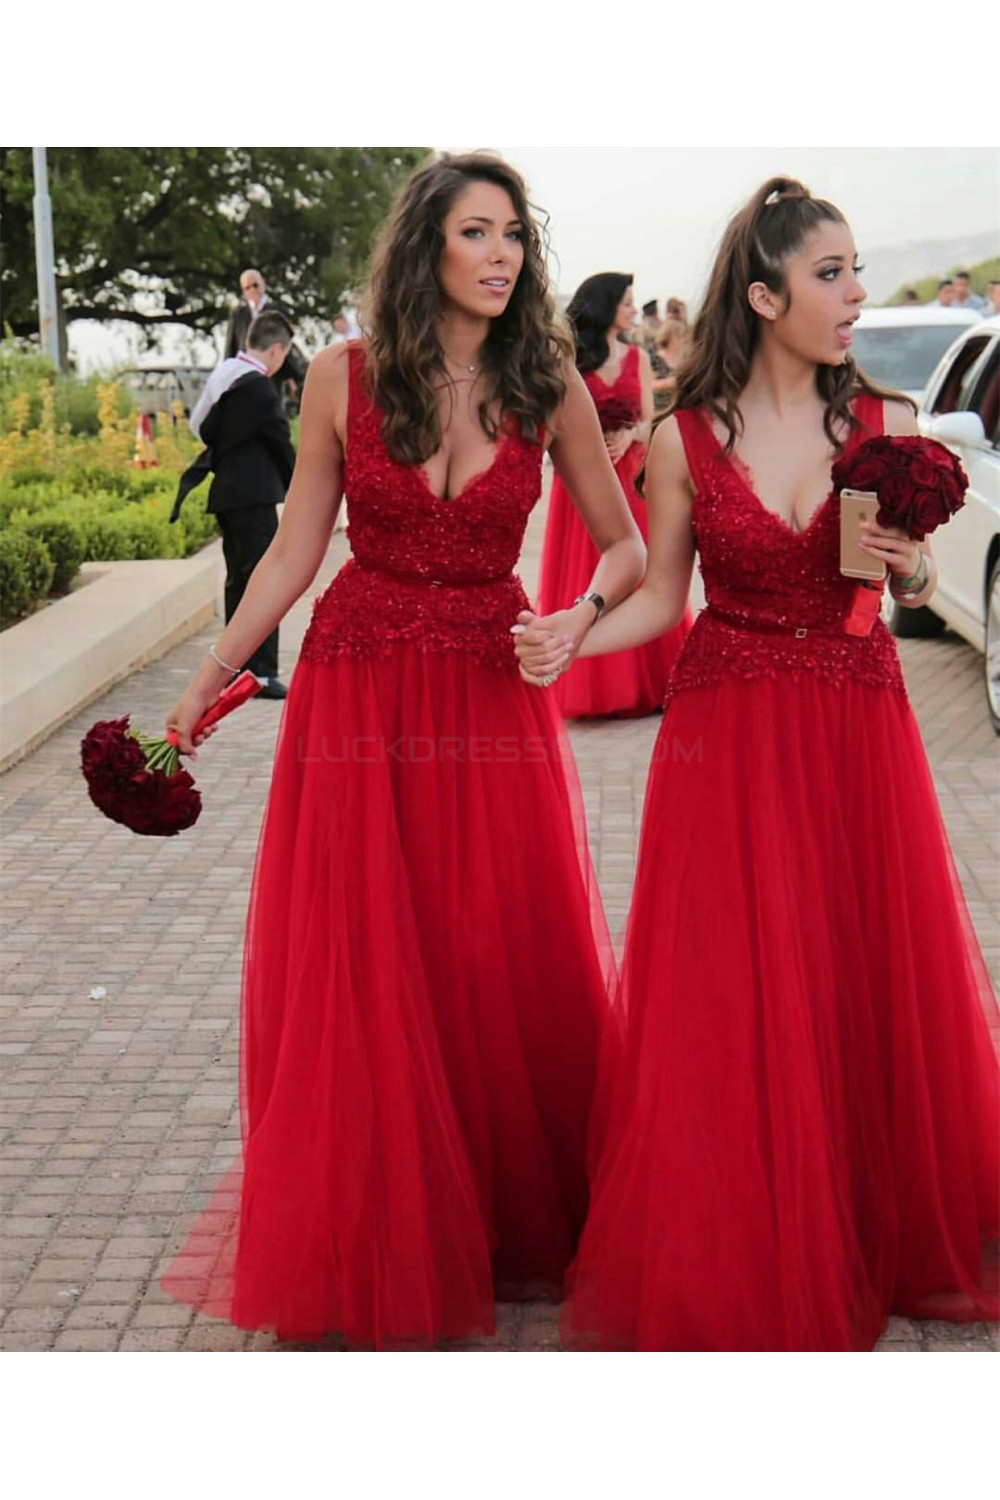 long red vneck lace wedding guest dresses bridesmaid